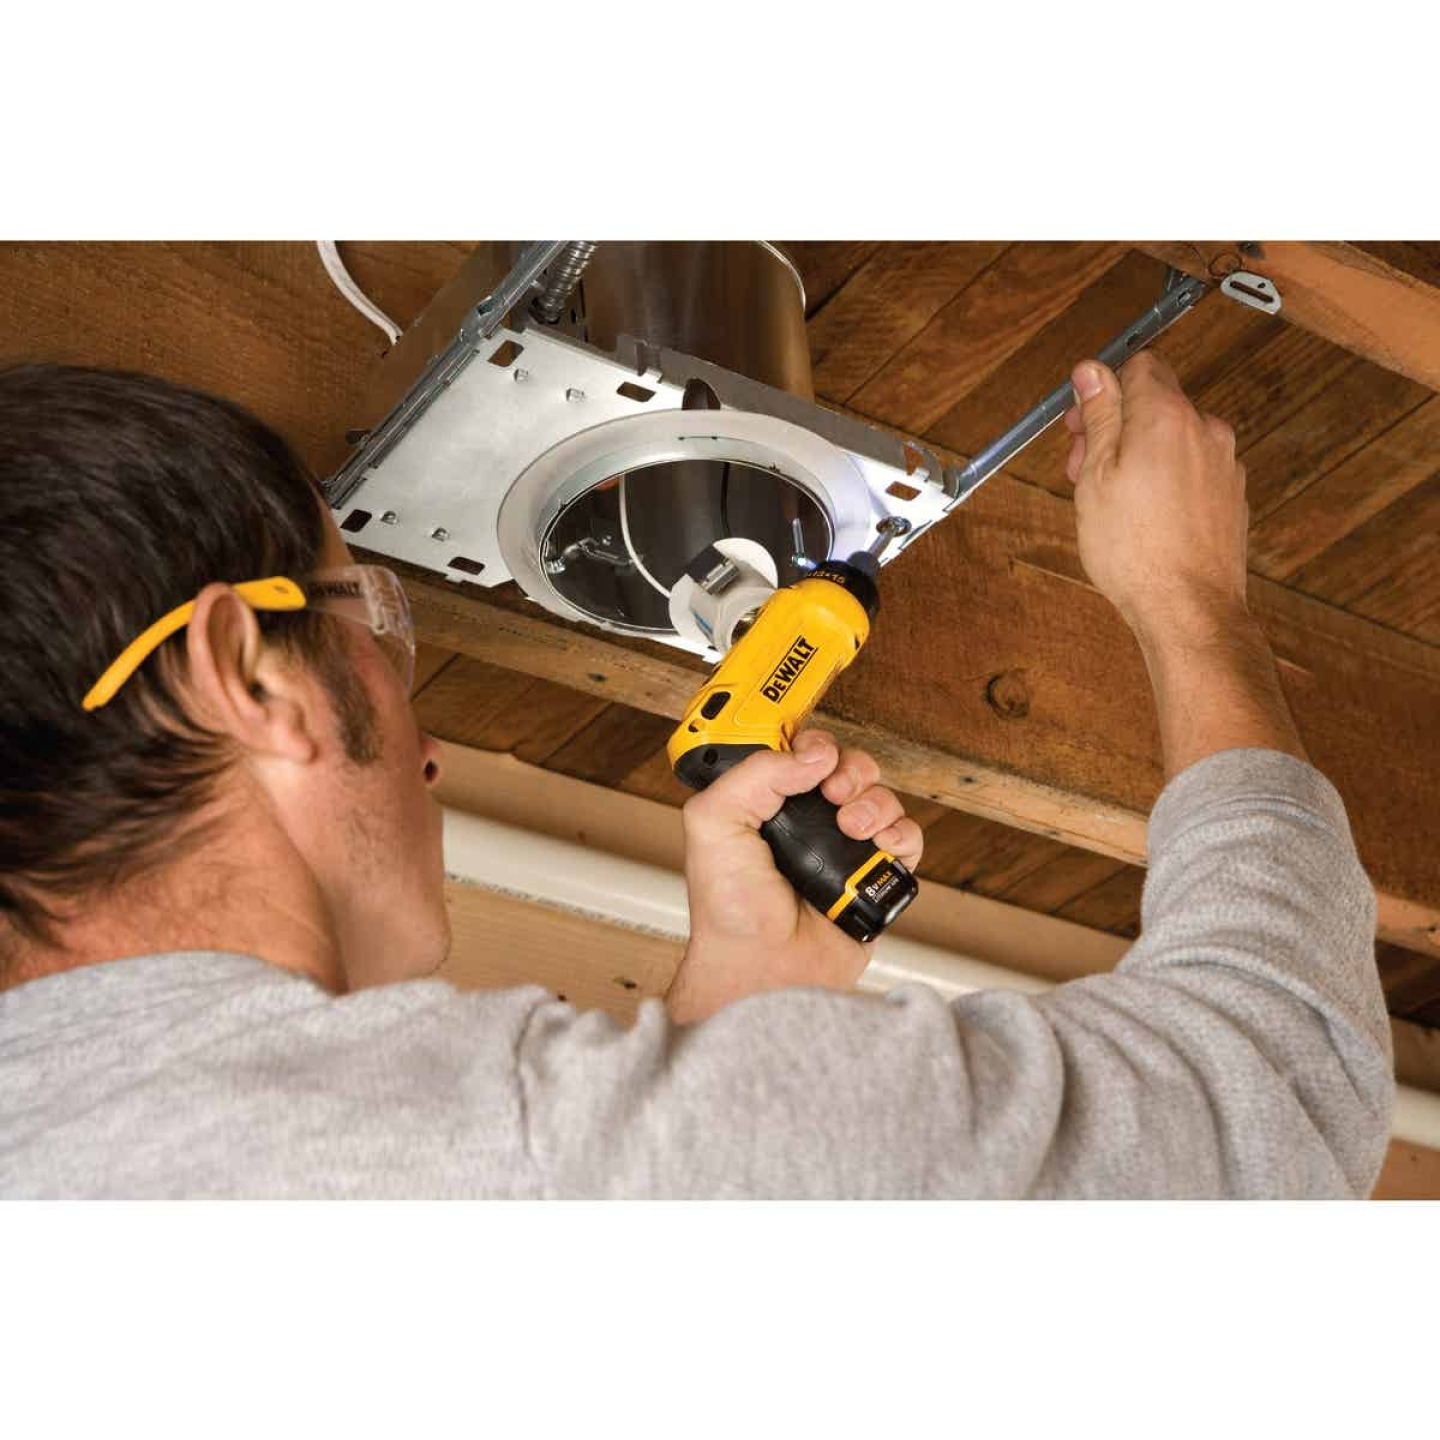 DeWalt 8-Volt MAX Lithium-Ion Gyroscopic 1/4 In. Cordless Screwdriver Kit (2-Battery) Image 5